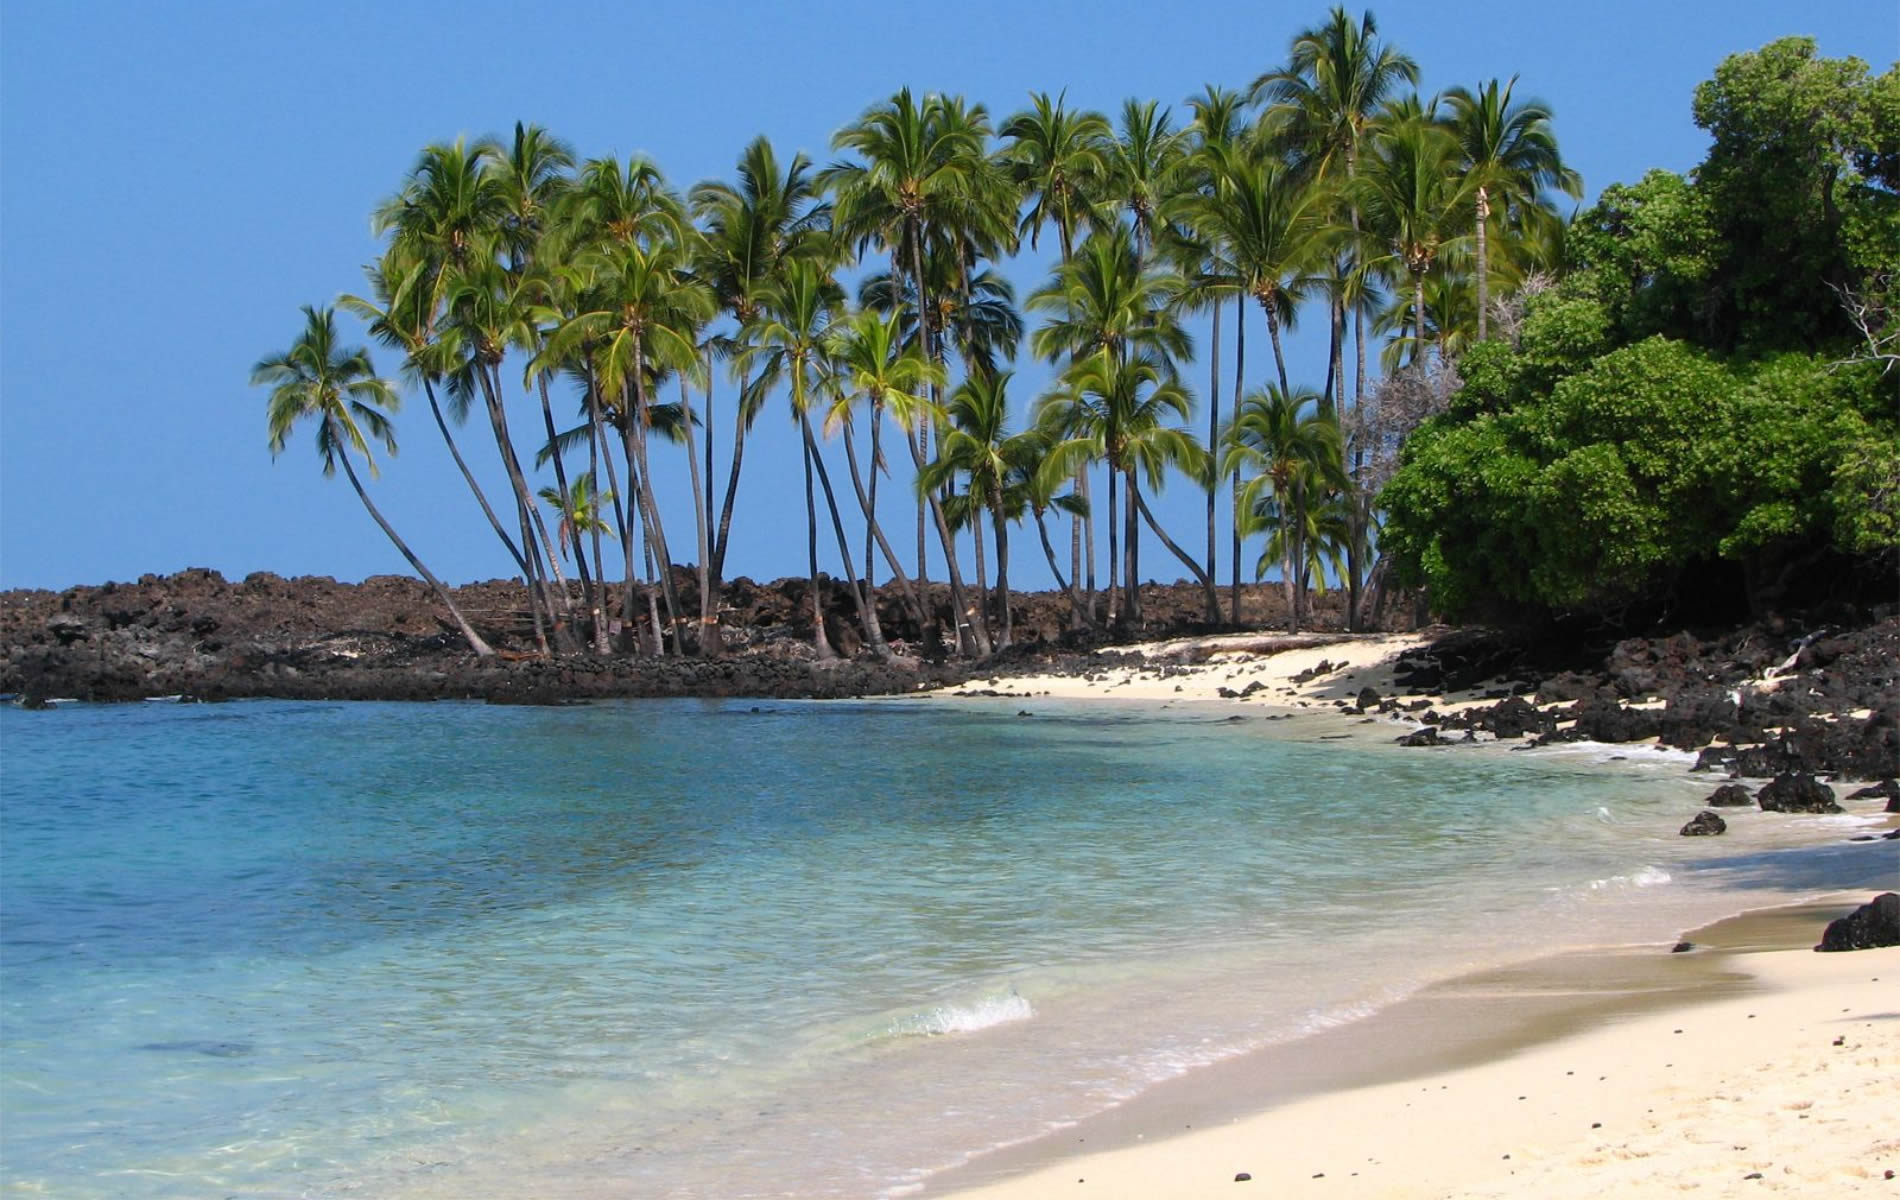 hawaii the paradise island 15 days of paradise our 15-day hawaiian island cruises offer an intoxicating mix of island adventure and carefree cruising you'll venture to four dazzling islands.